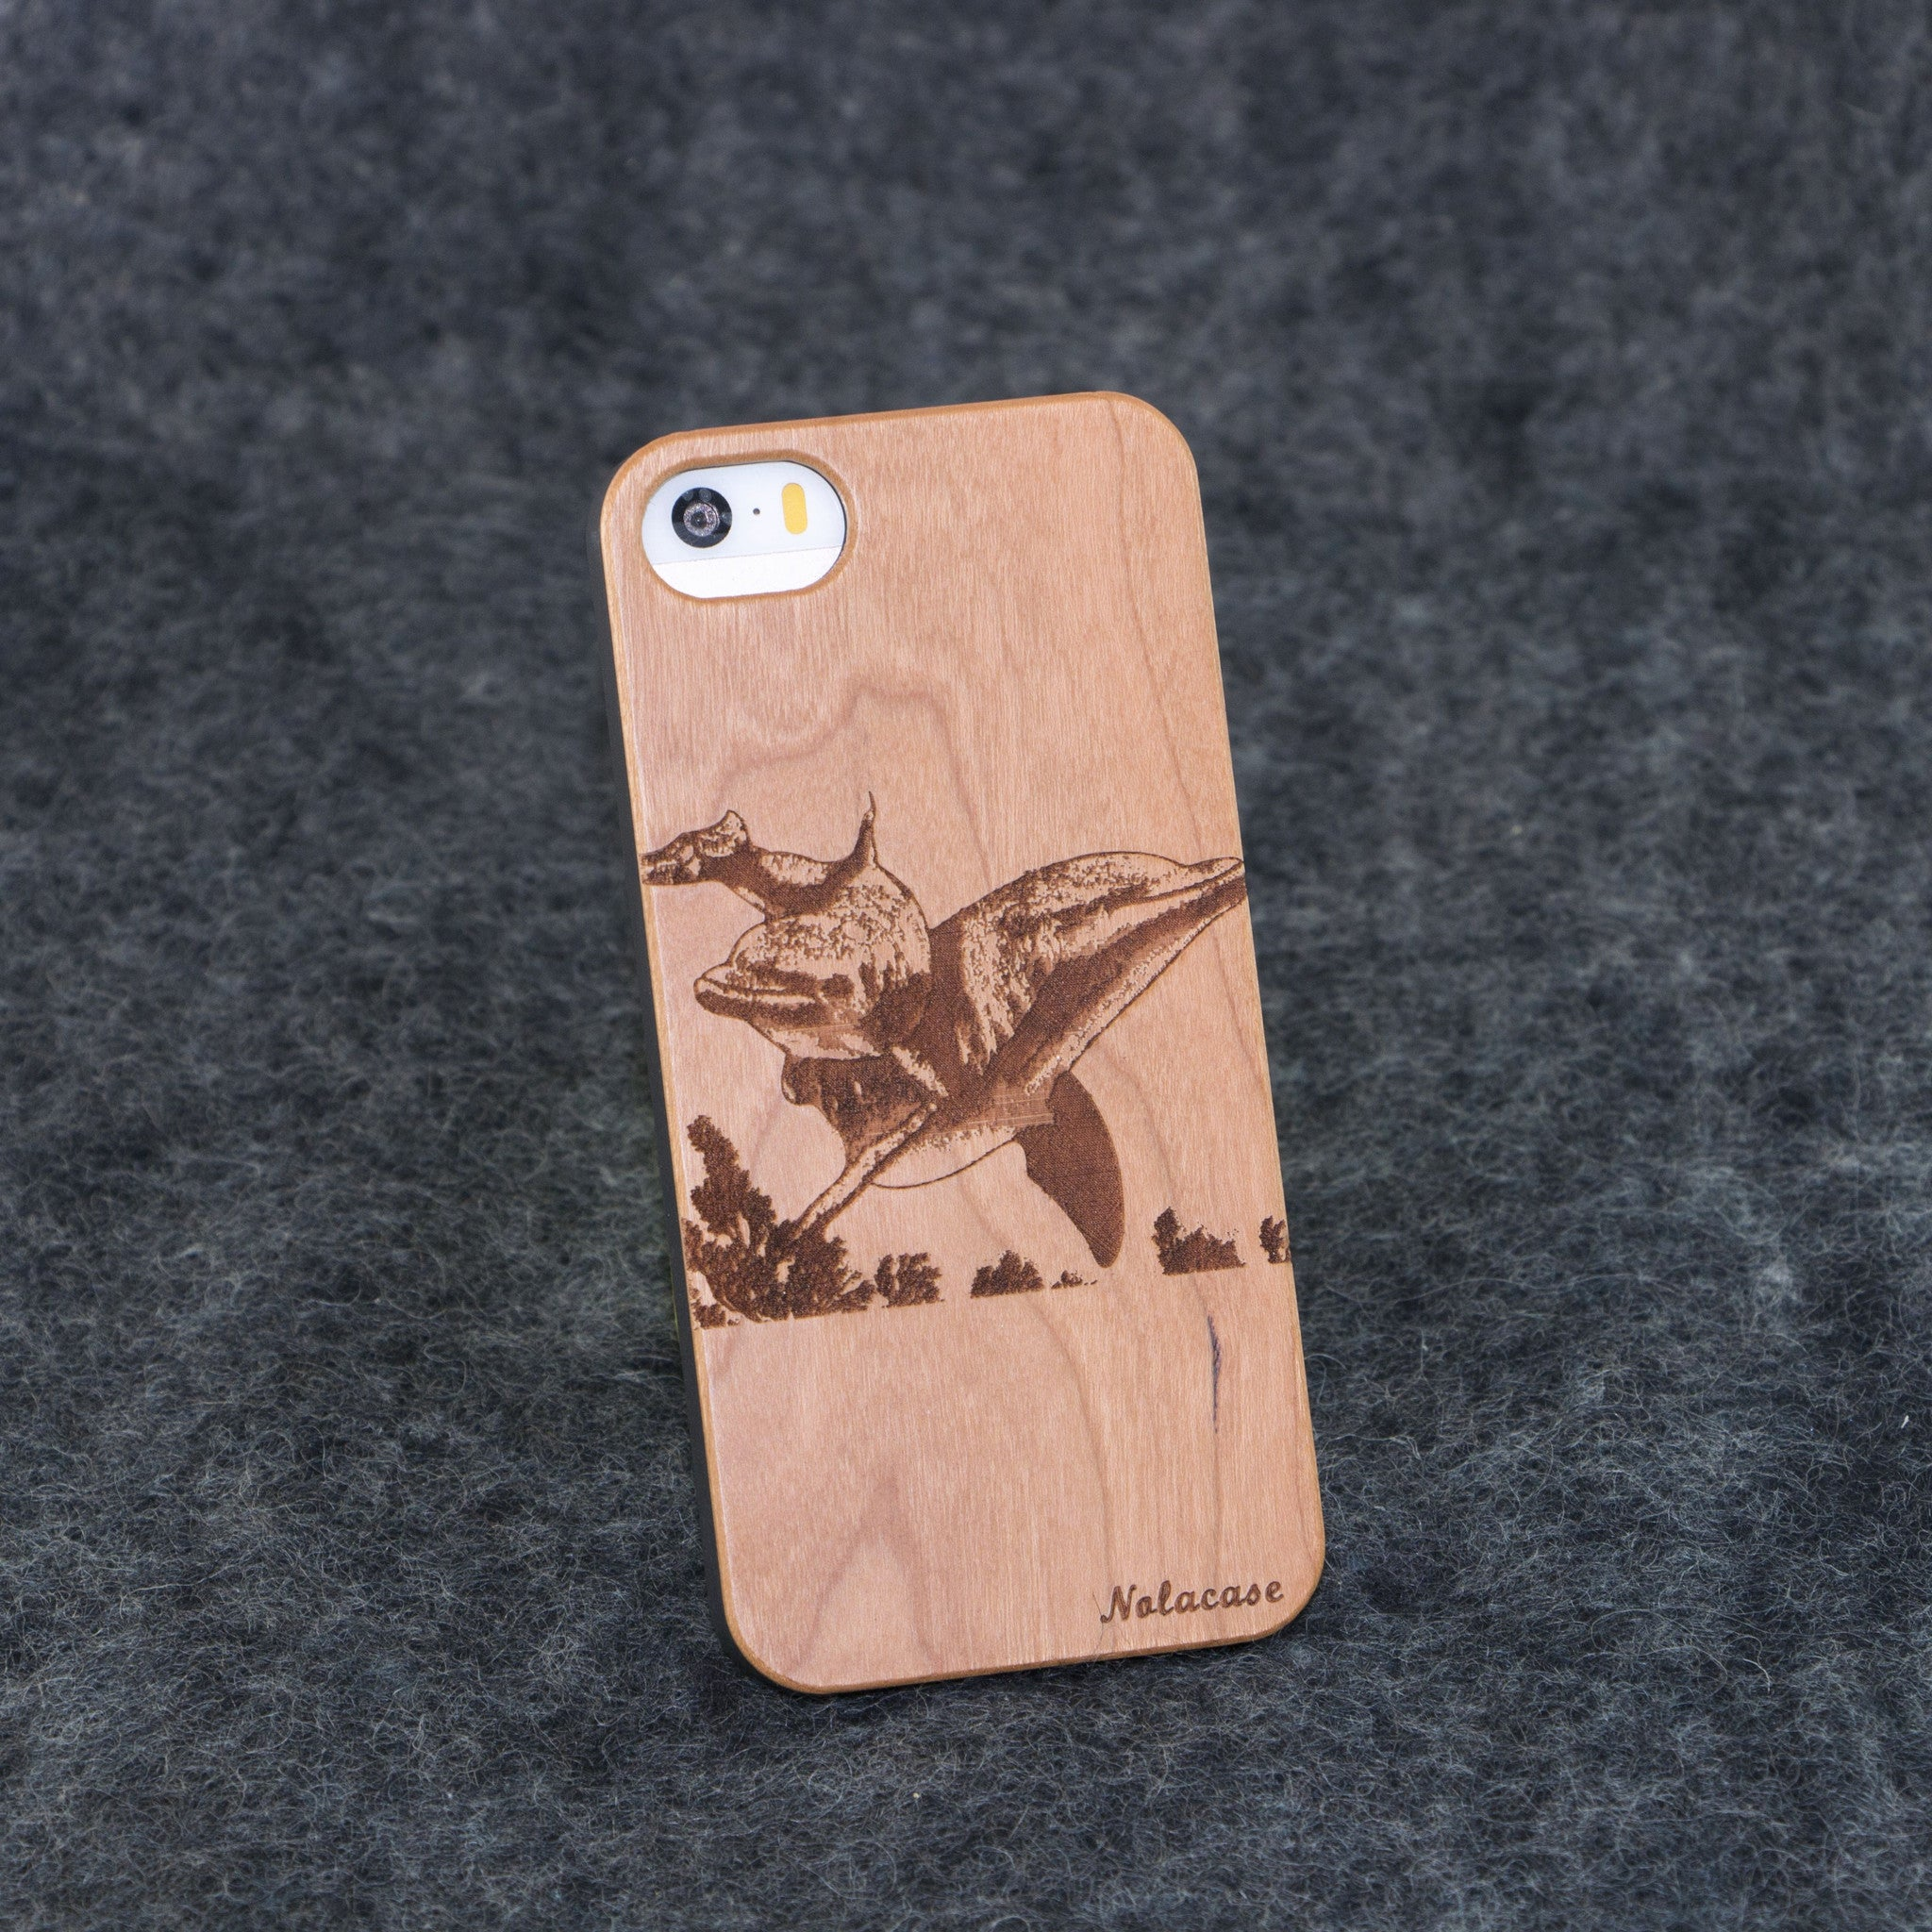 iPhone 5 / 5S Dolphins Slim Wood Case - NOLACASE